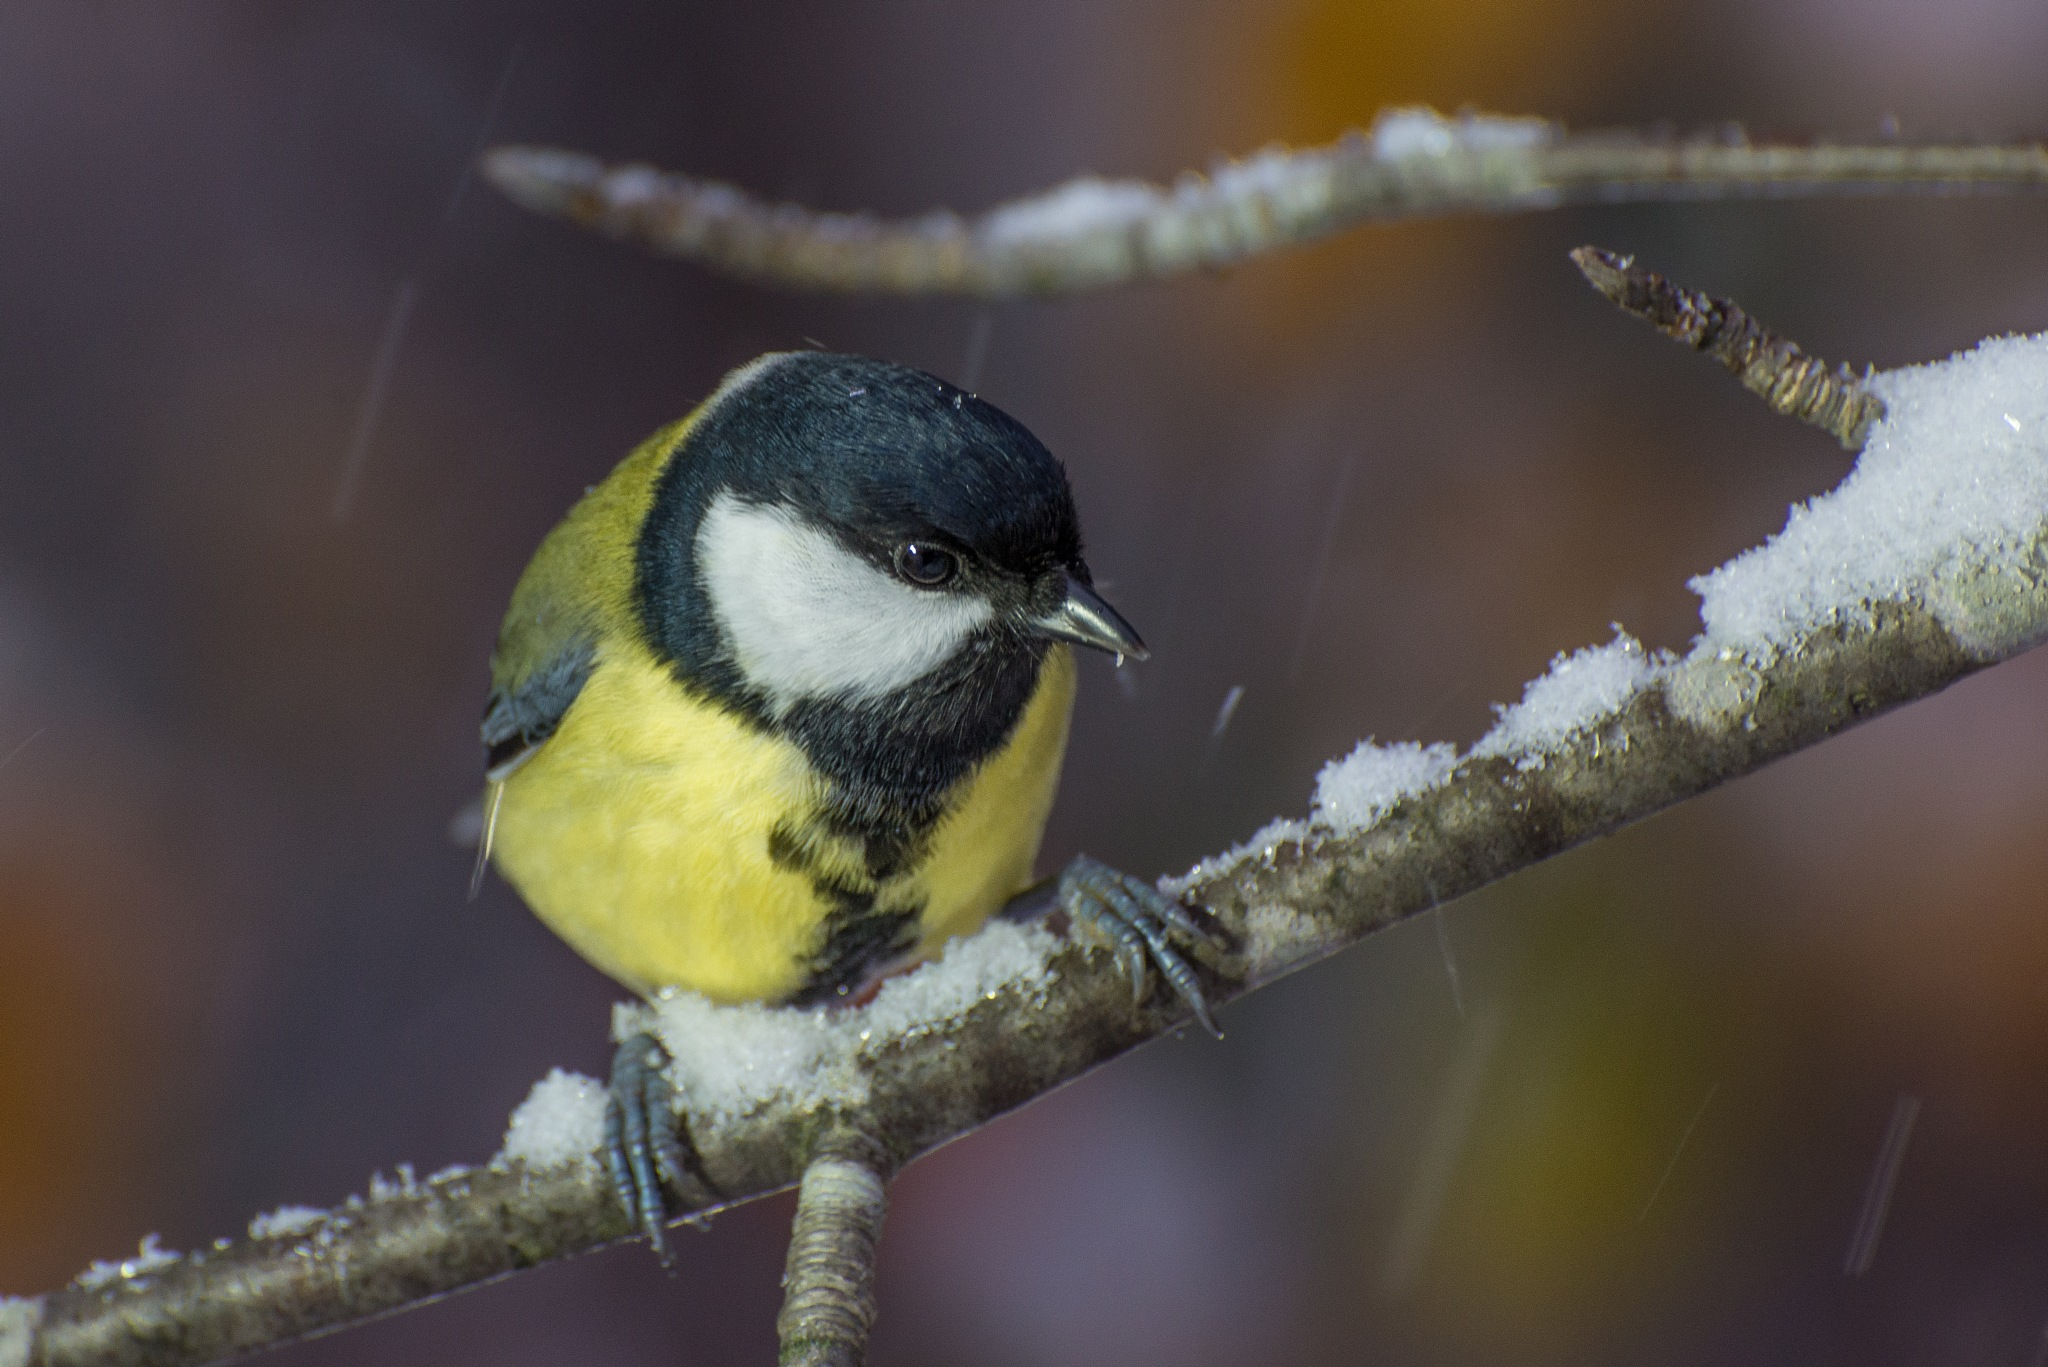 Snowing by HeikkiHAtMAN PHOTOGRAPHY